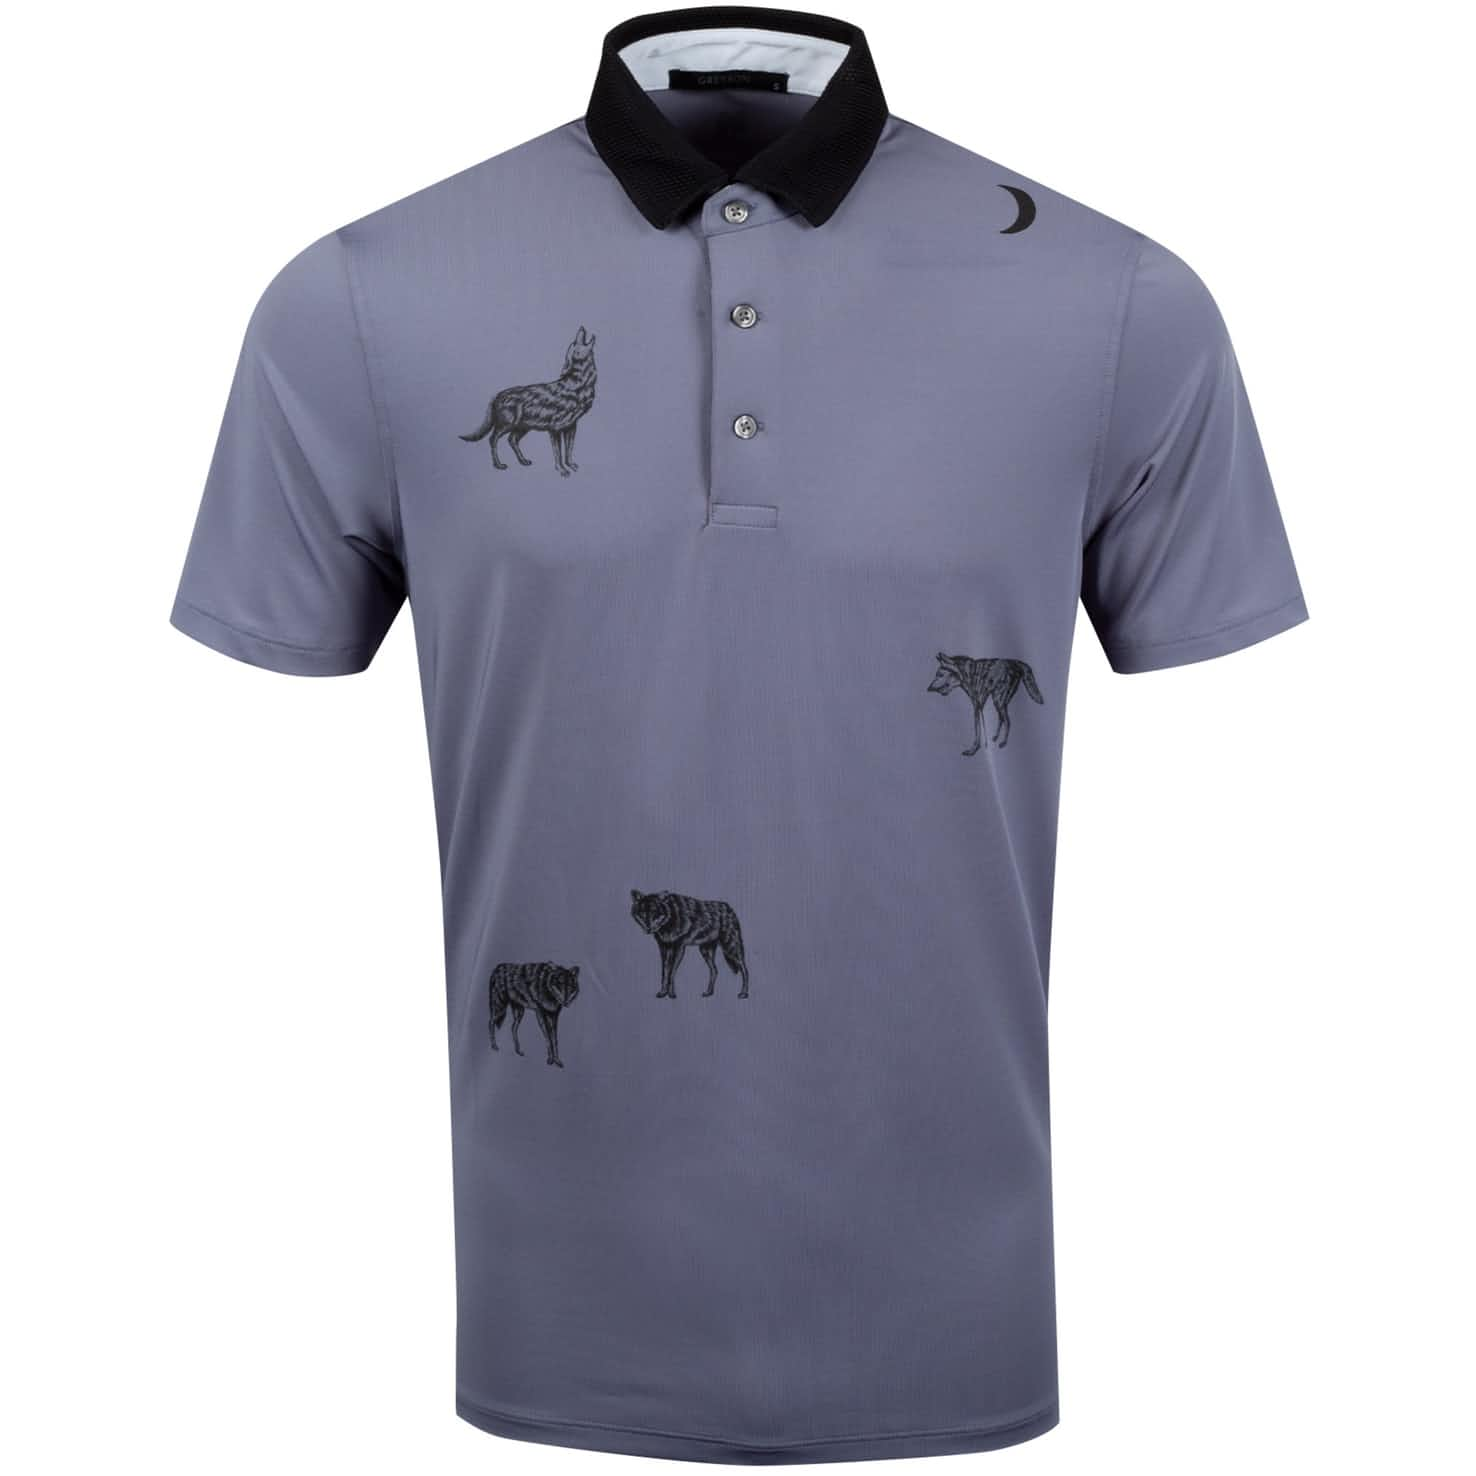 Under The Moon & Dreaming Polo Shadow - SS20